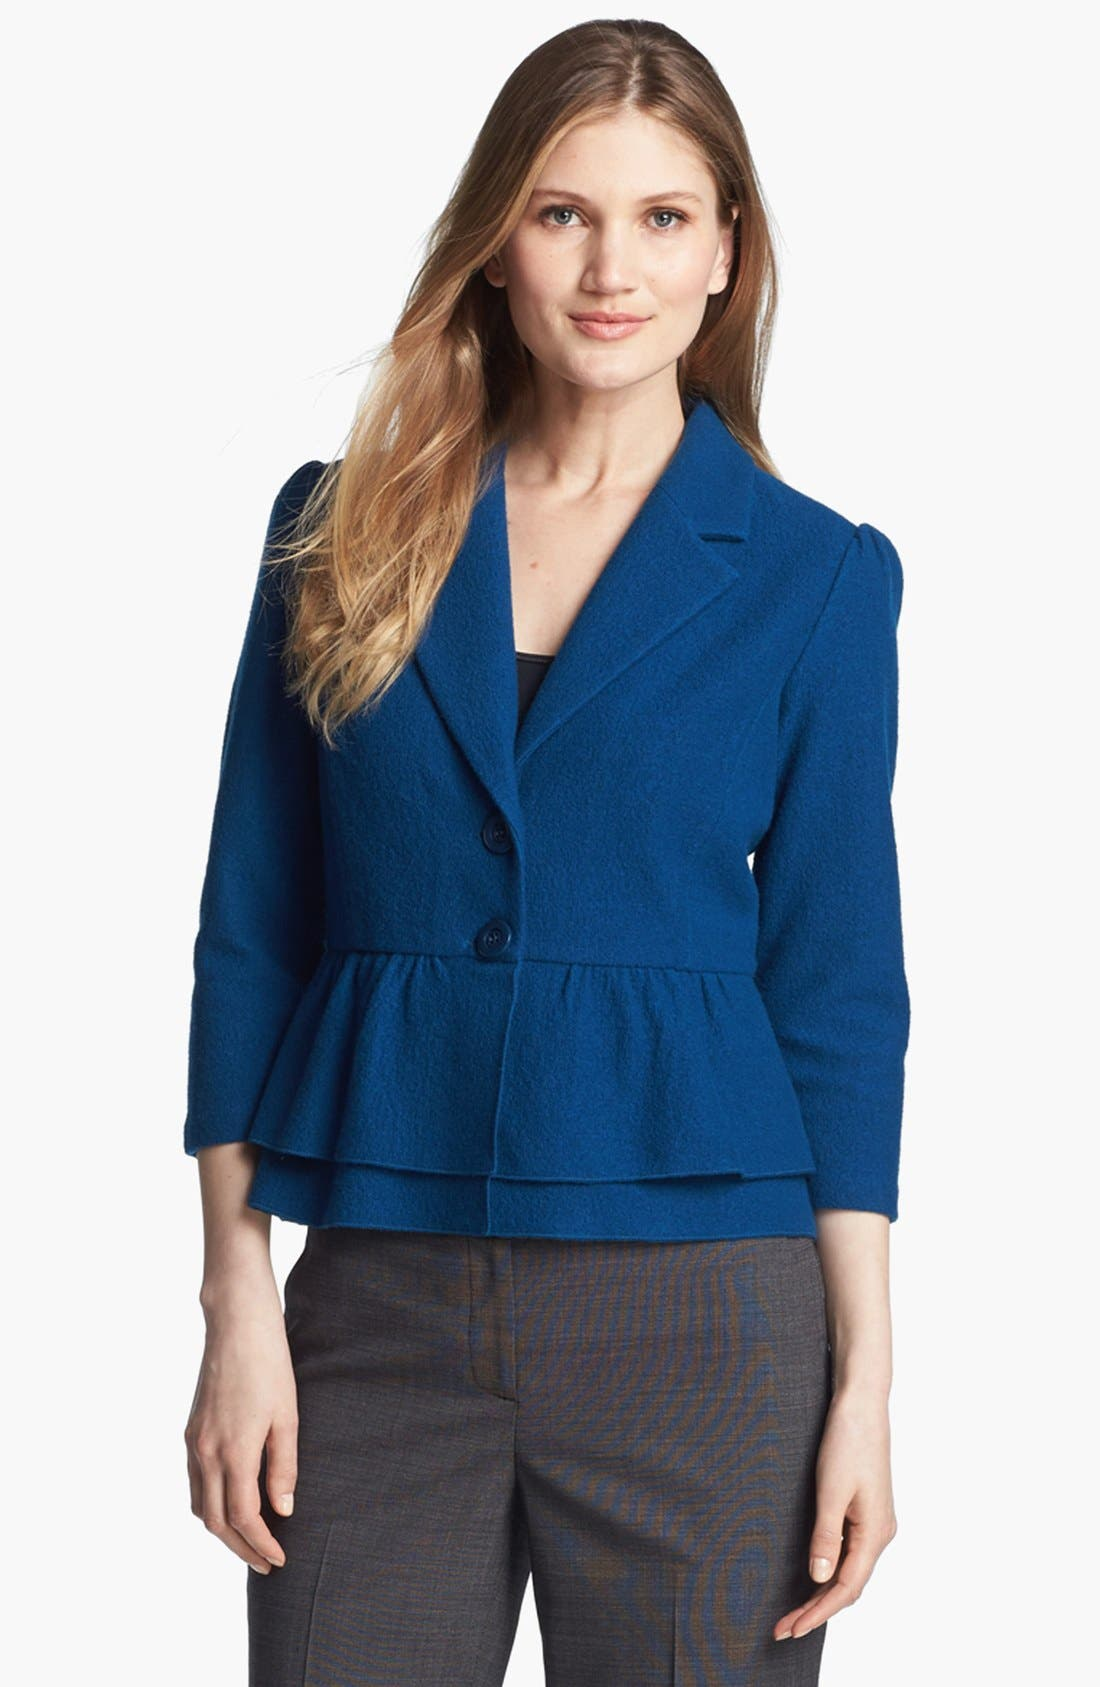 Main Image - Classiques Entier® Boiled Wool Peplum Sweater Jacket